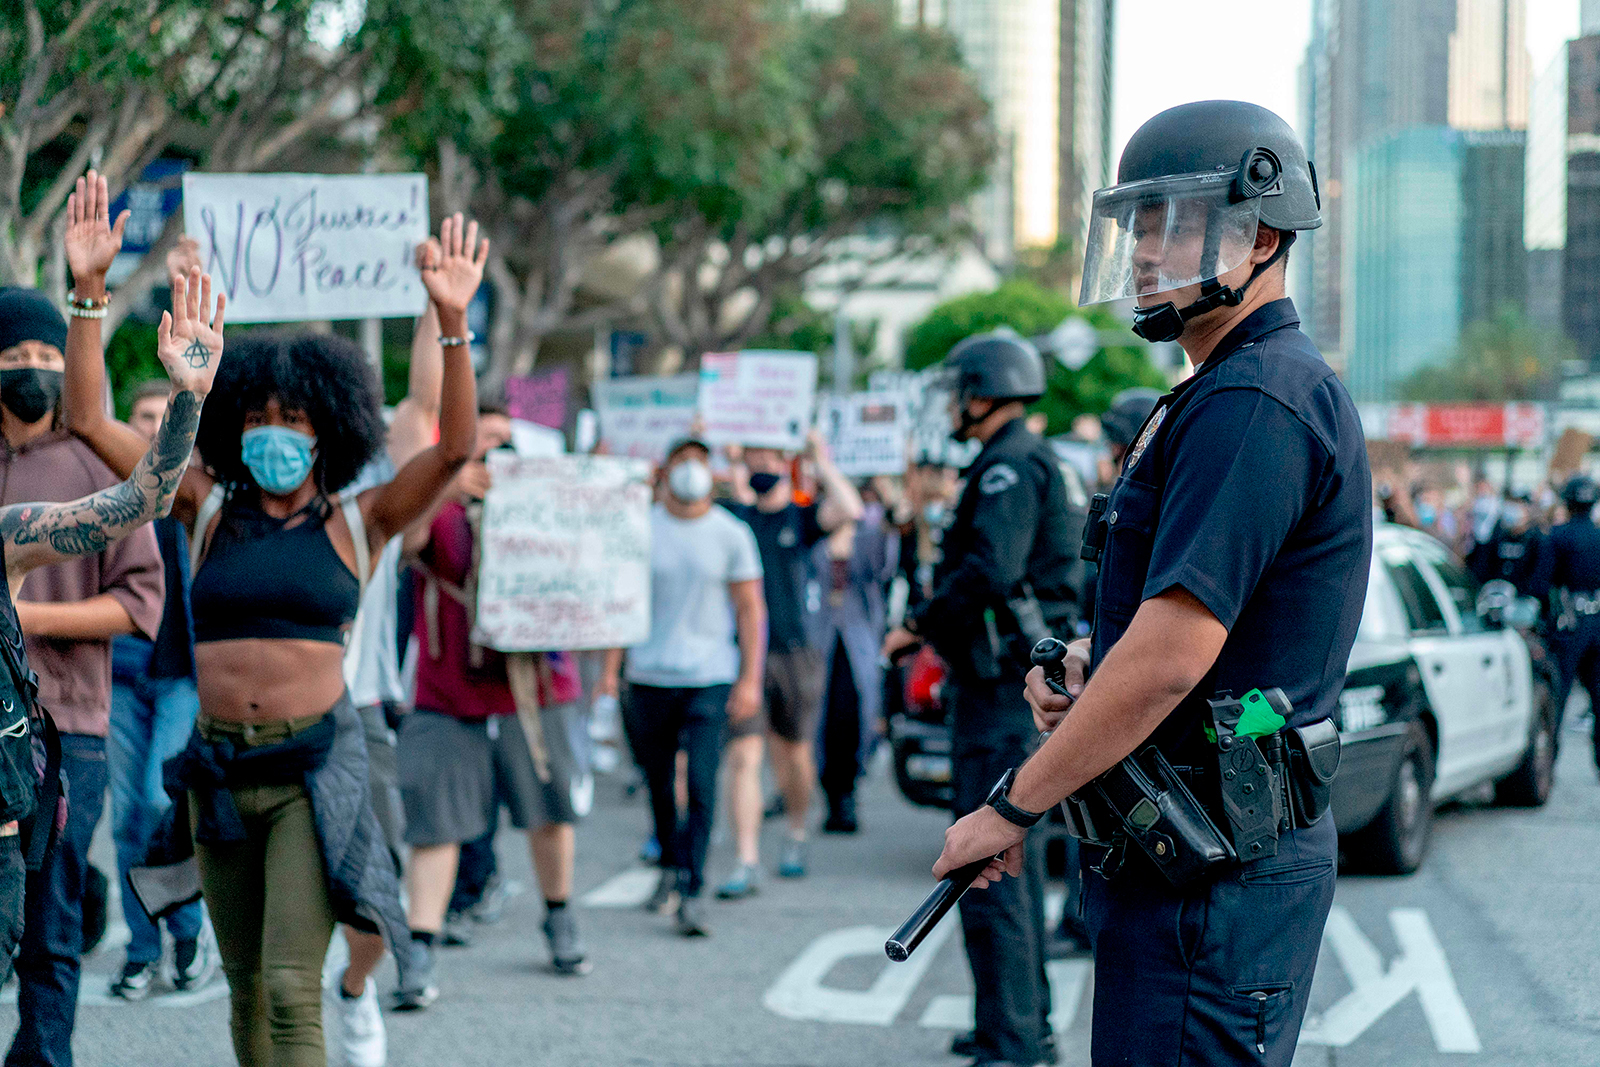 Protesters march past LAPD officers during a demonstration over the death of George Floyd, in downtown Los Angeles, California, on June 6.